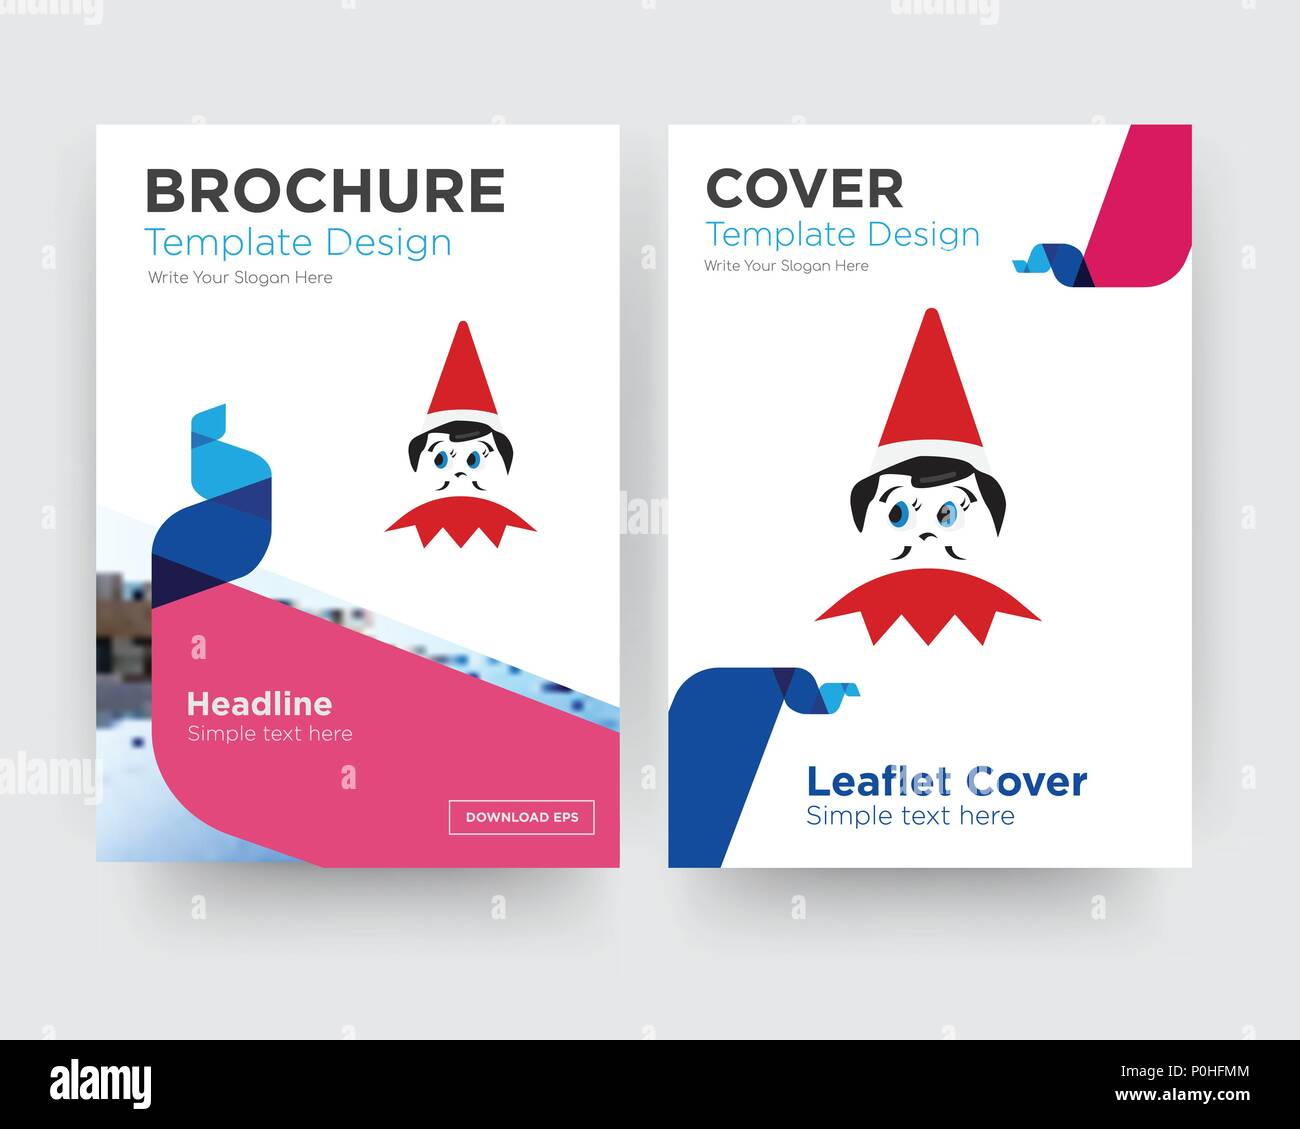 elf on the shelf brochure flyer design template with abstract photo